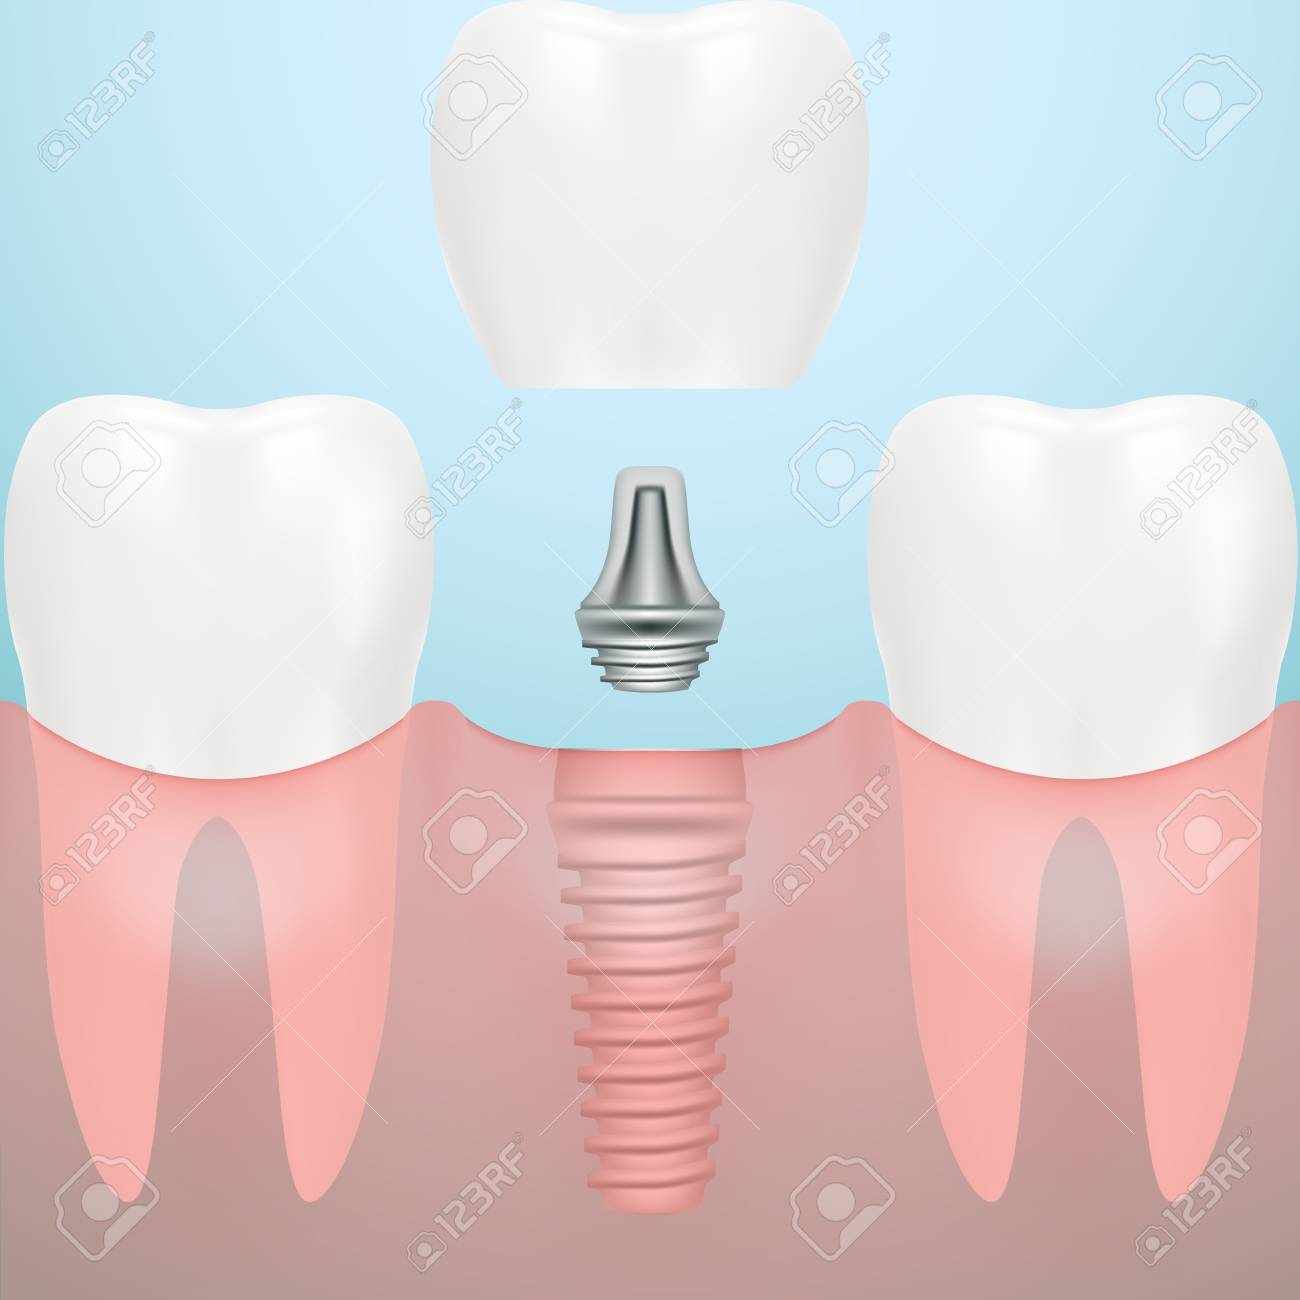 Human Teeth And Dental Implant Isolated On A Background Vector